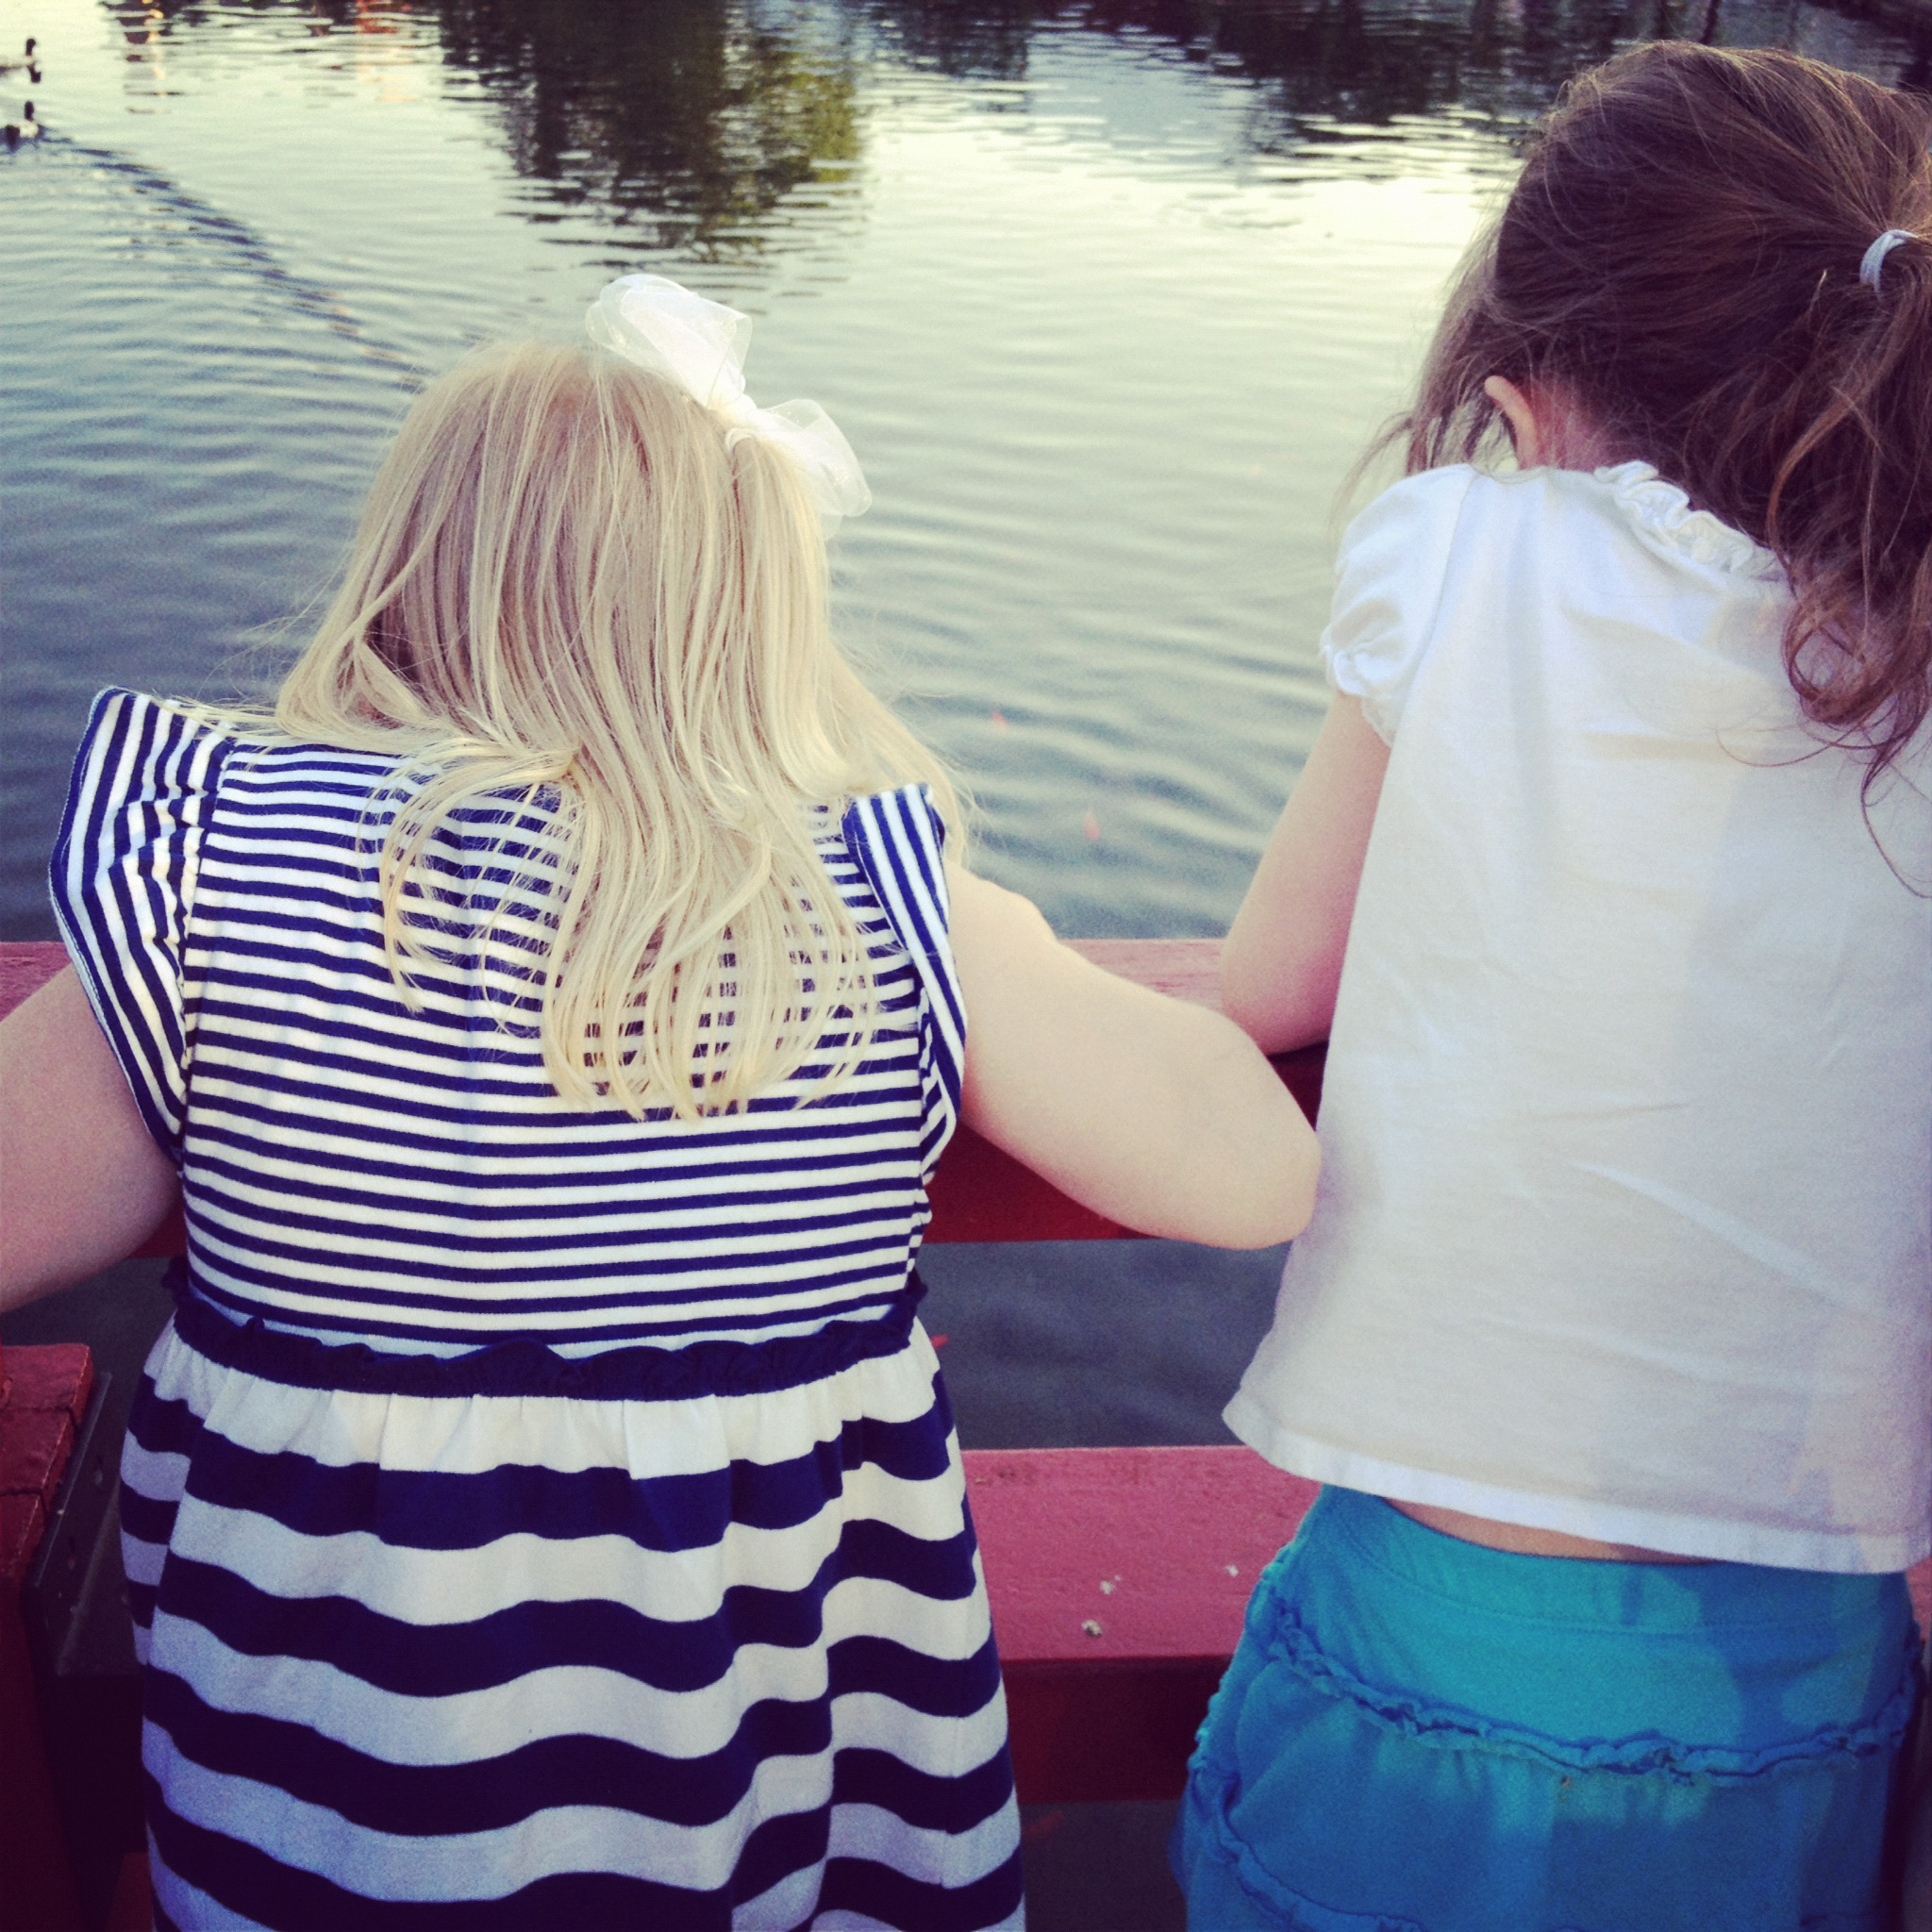 The girls looking at the ducks